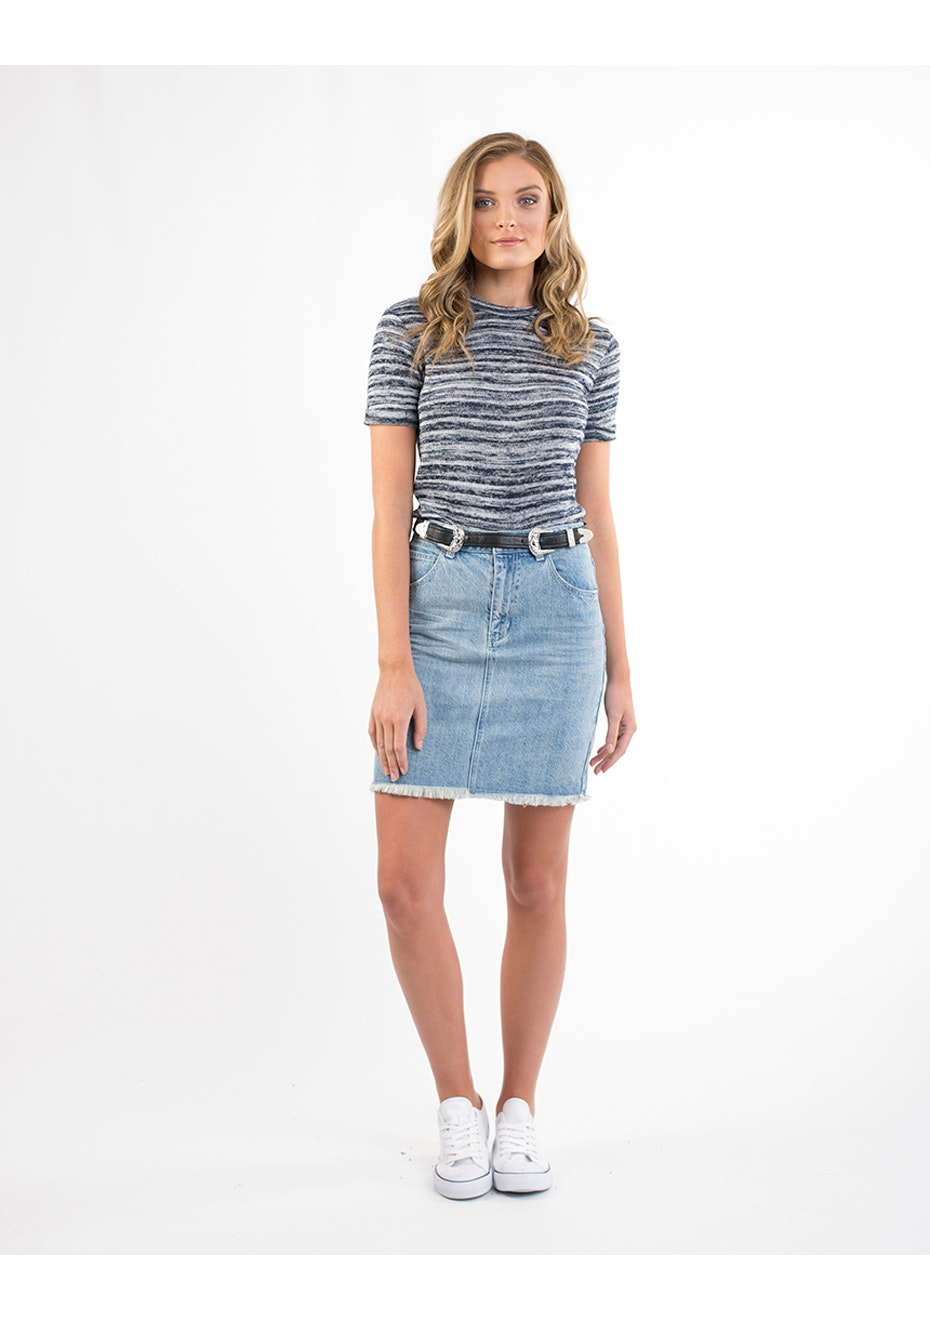 All About Eve - Jam Skirt - Light Blue